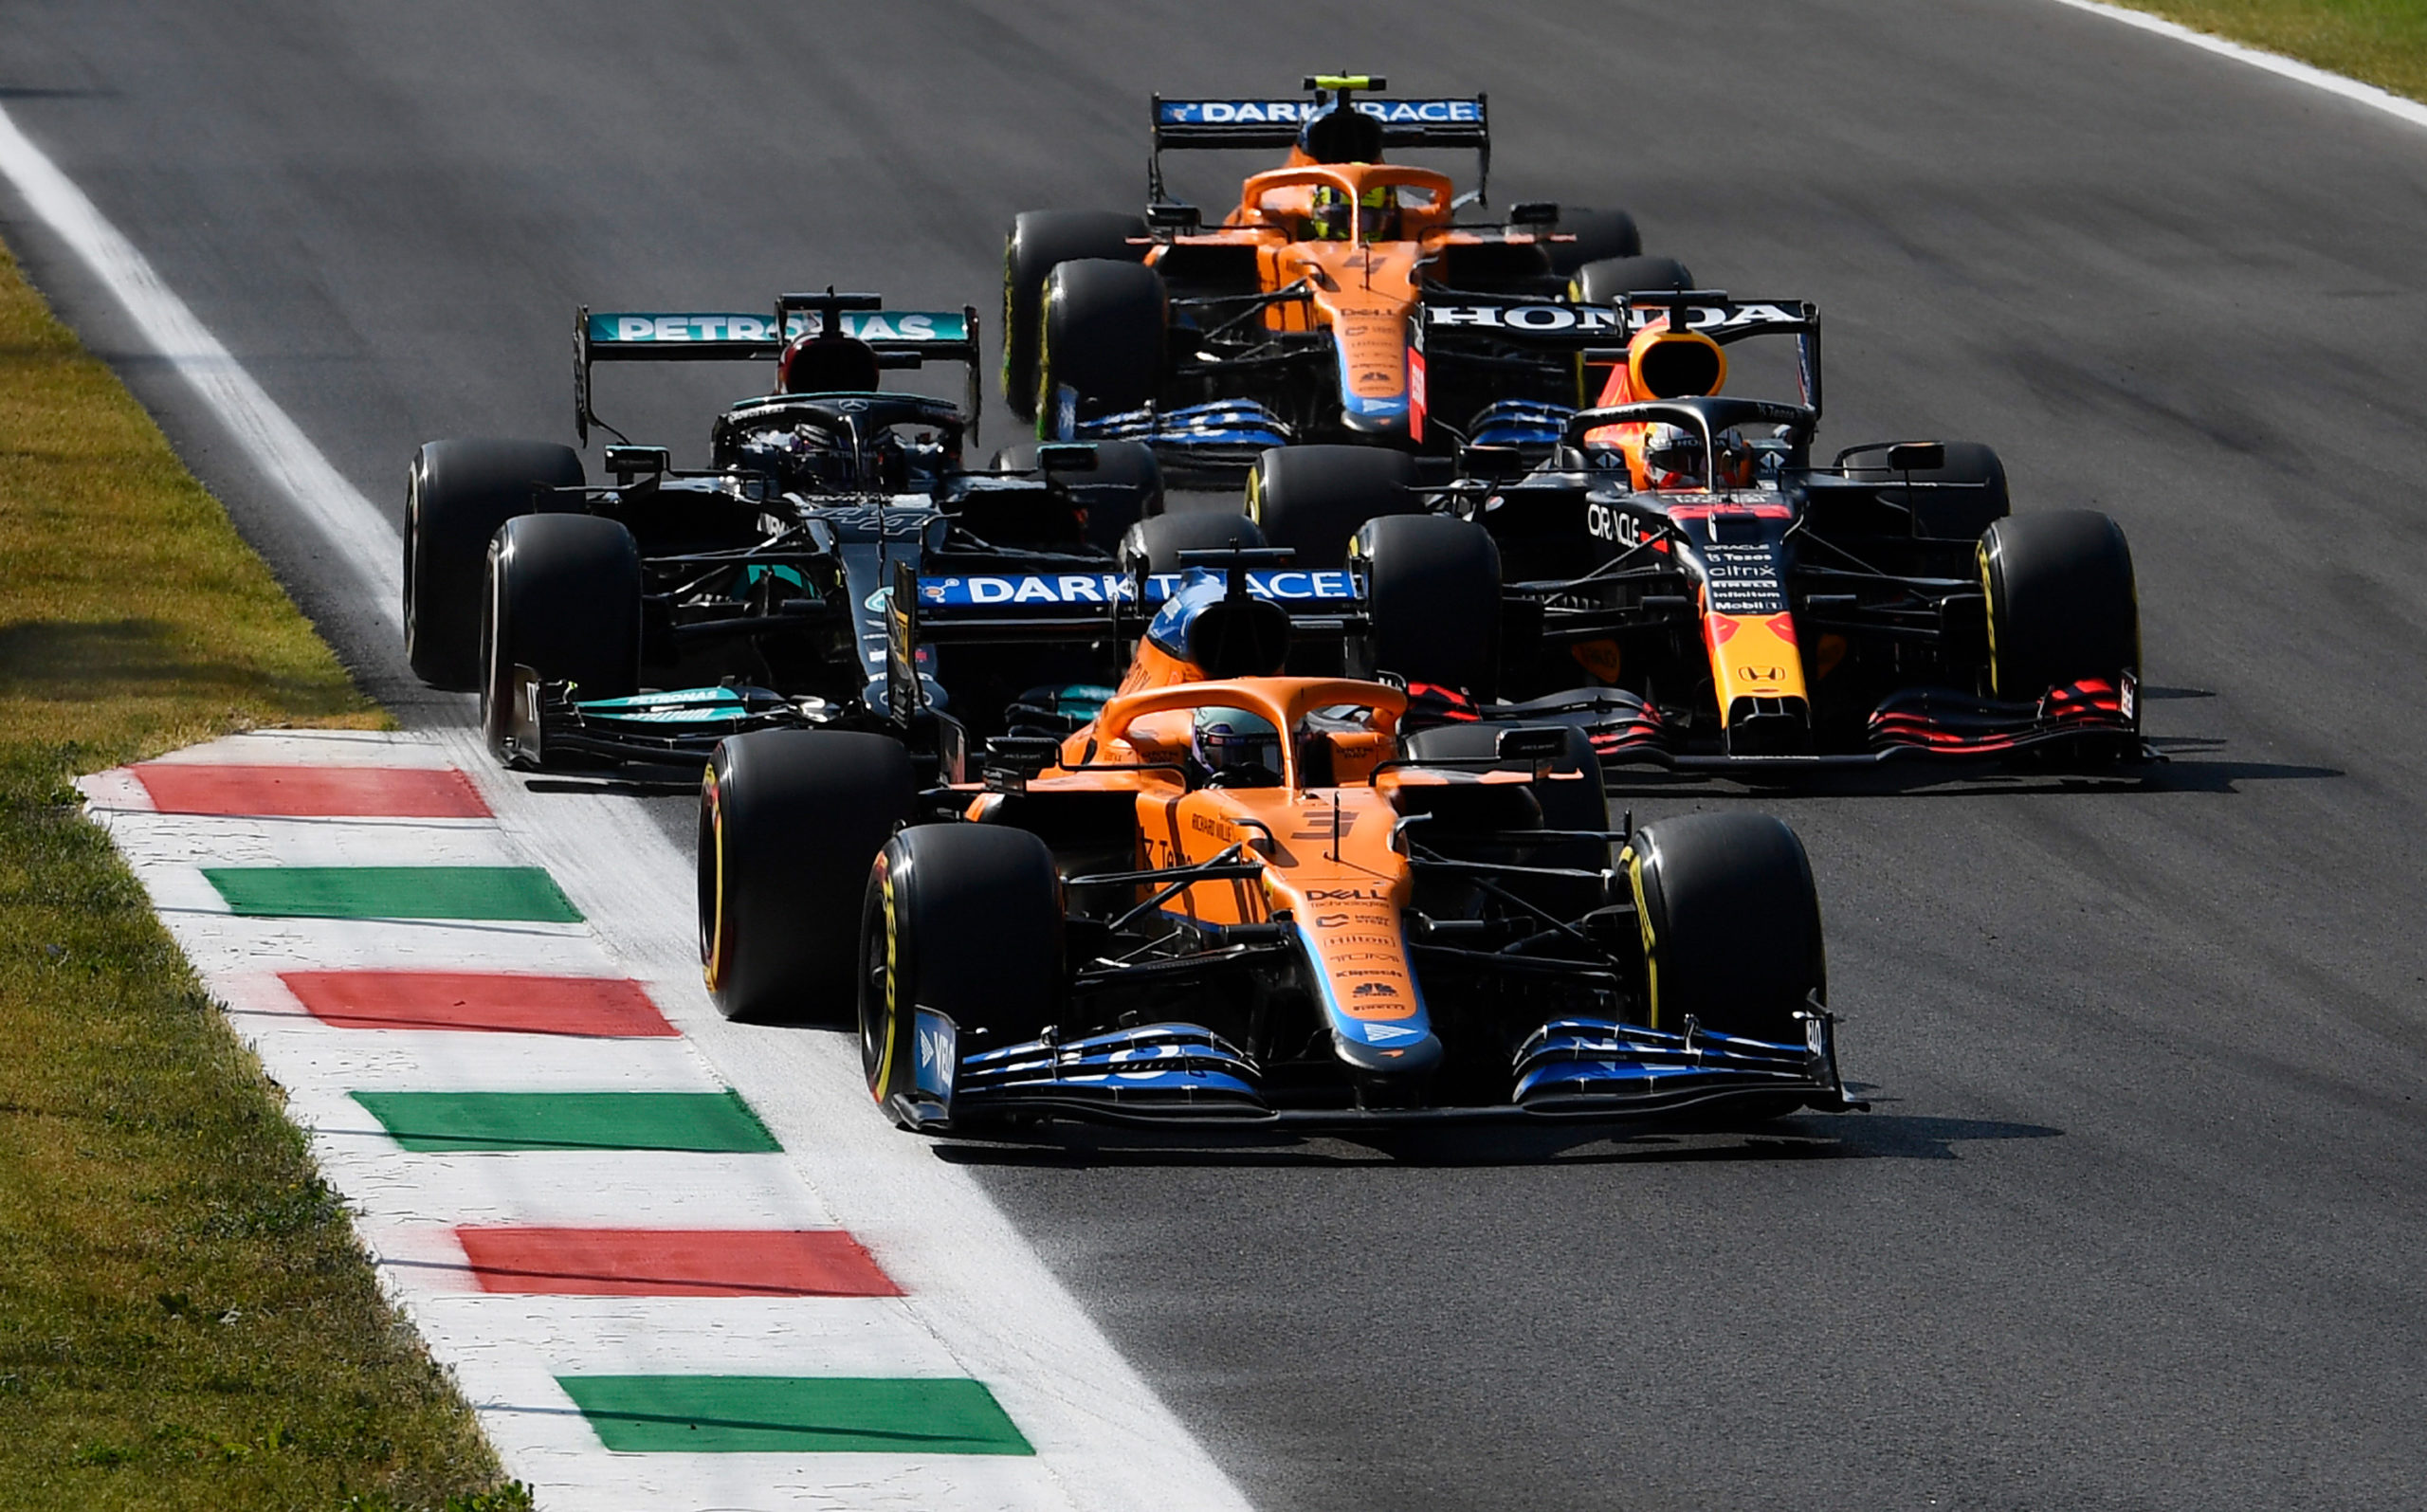 MONZA, ITALY - SEPTEMBER 12: Daniel Ricciardo of Australia driving the (3) McLaren F1 Team MCL35M Mercedes leads Lewis Hamilton of Great Britain driving the (44) Mercedes AMG Petronas F1 Team Mercedes W12 and Max Verstappen of the Netherlands driving the (33) Red Bull Racing RB16B Honda on track during the F1 Grand Prix of Italy at Autodromo di Monza on September 12, 2021 in Monza, Italy. (Photo by Rudy Carezzevoli/Getty Images) // Getty Images / Red Bull Content Pool  // SI202109120251 // Usage for editorial use only //